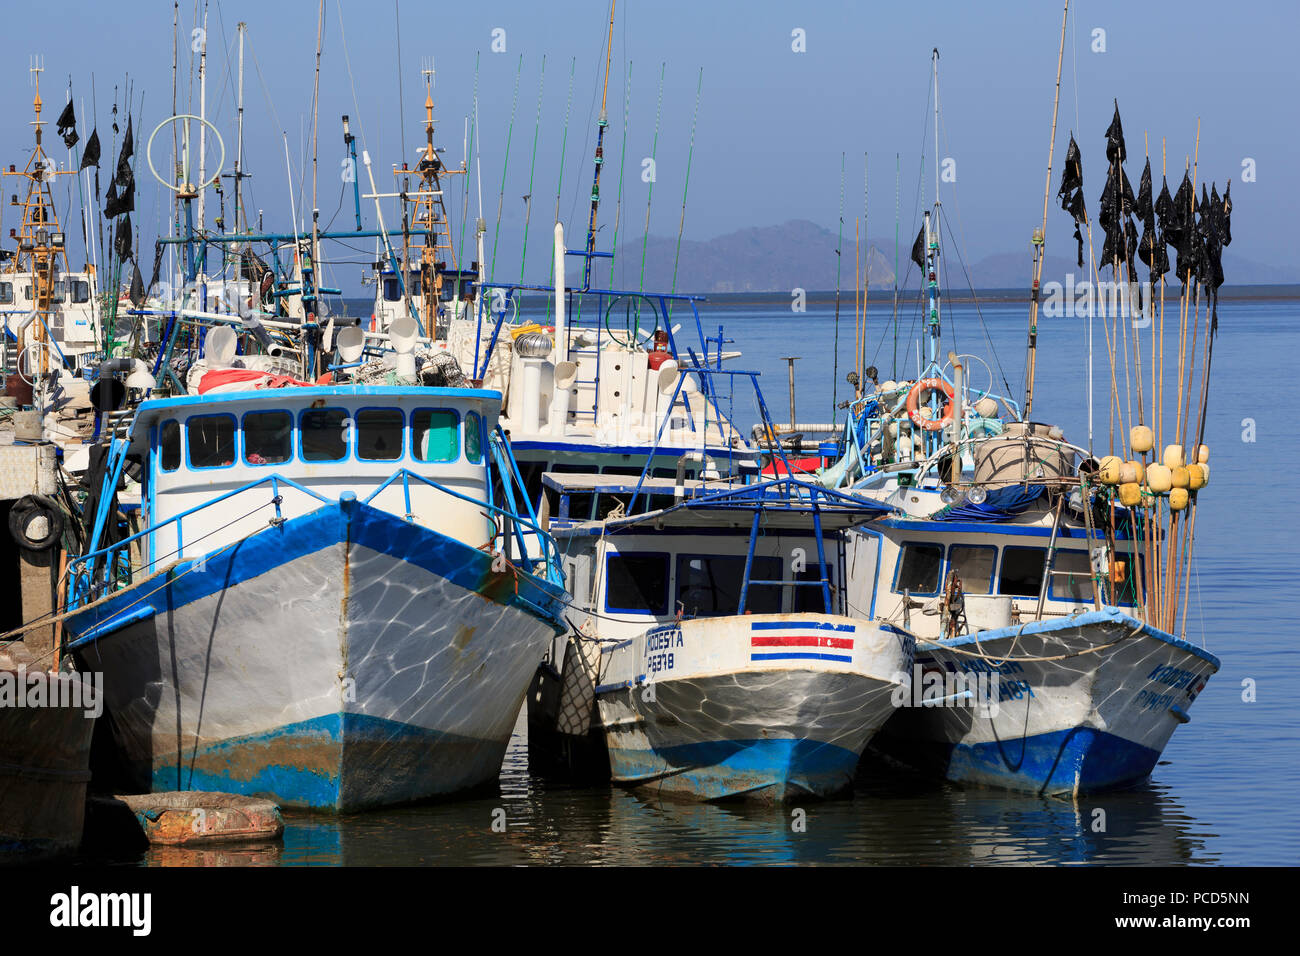 Fishing Boats, Puntarenas City, Costa Rica, Central America - Stock Image